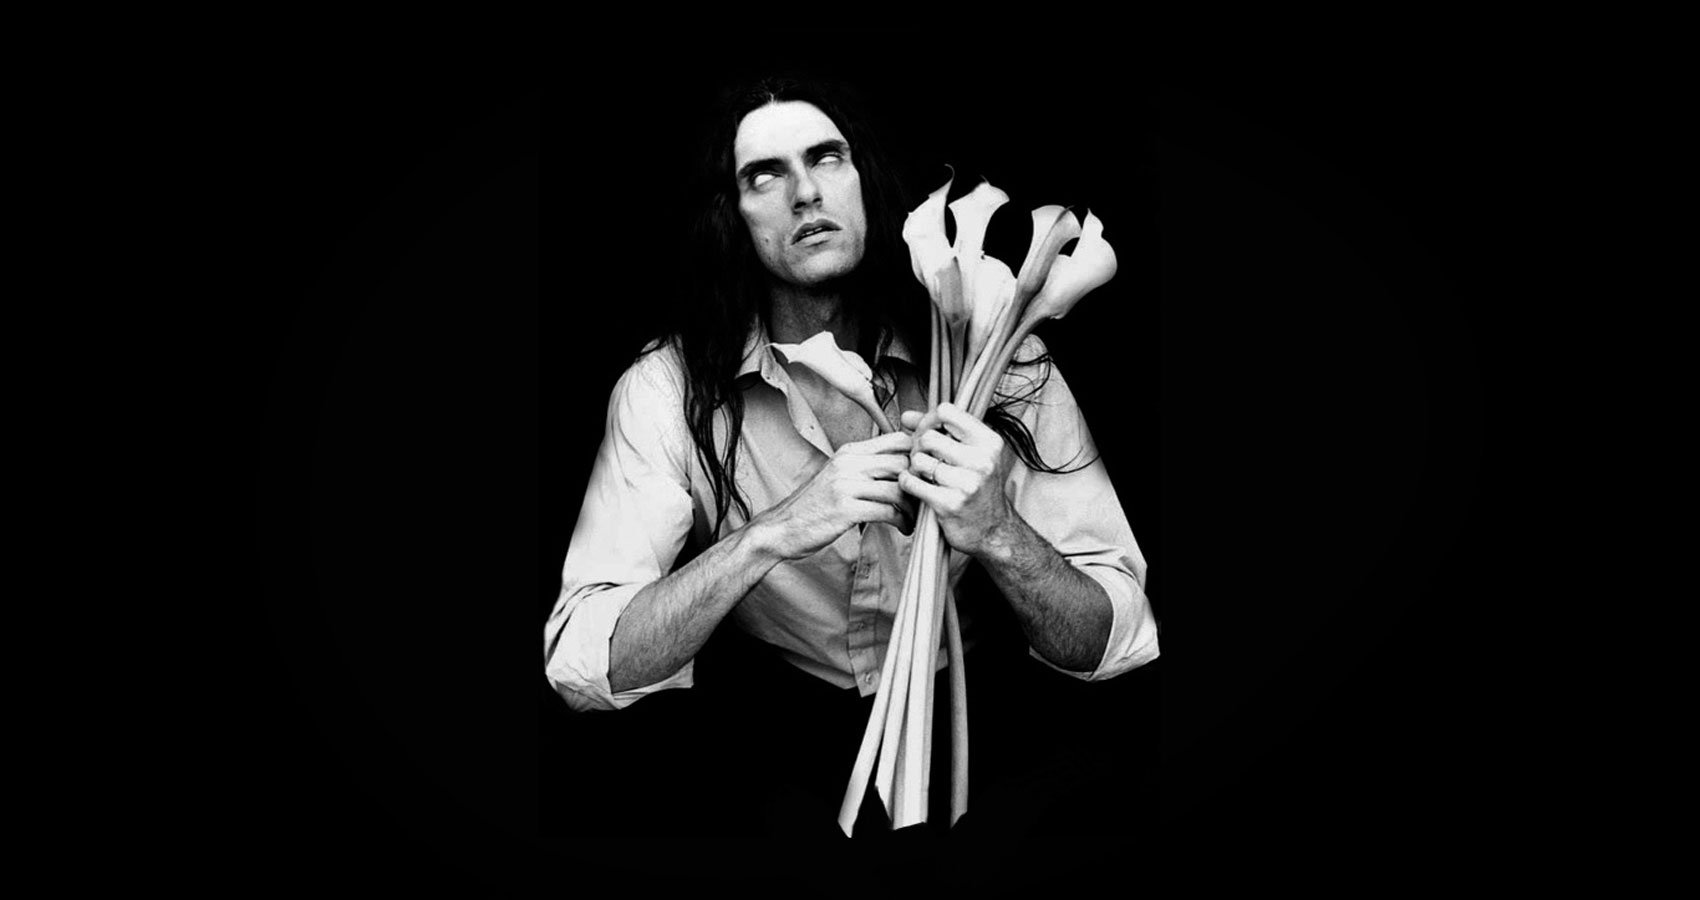 Ode to Peter Steele - The Green Man by Fallen Engel at Spillwords.com